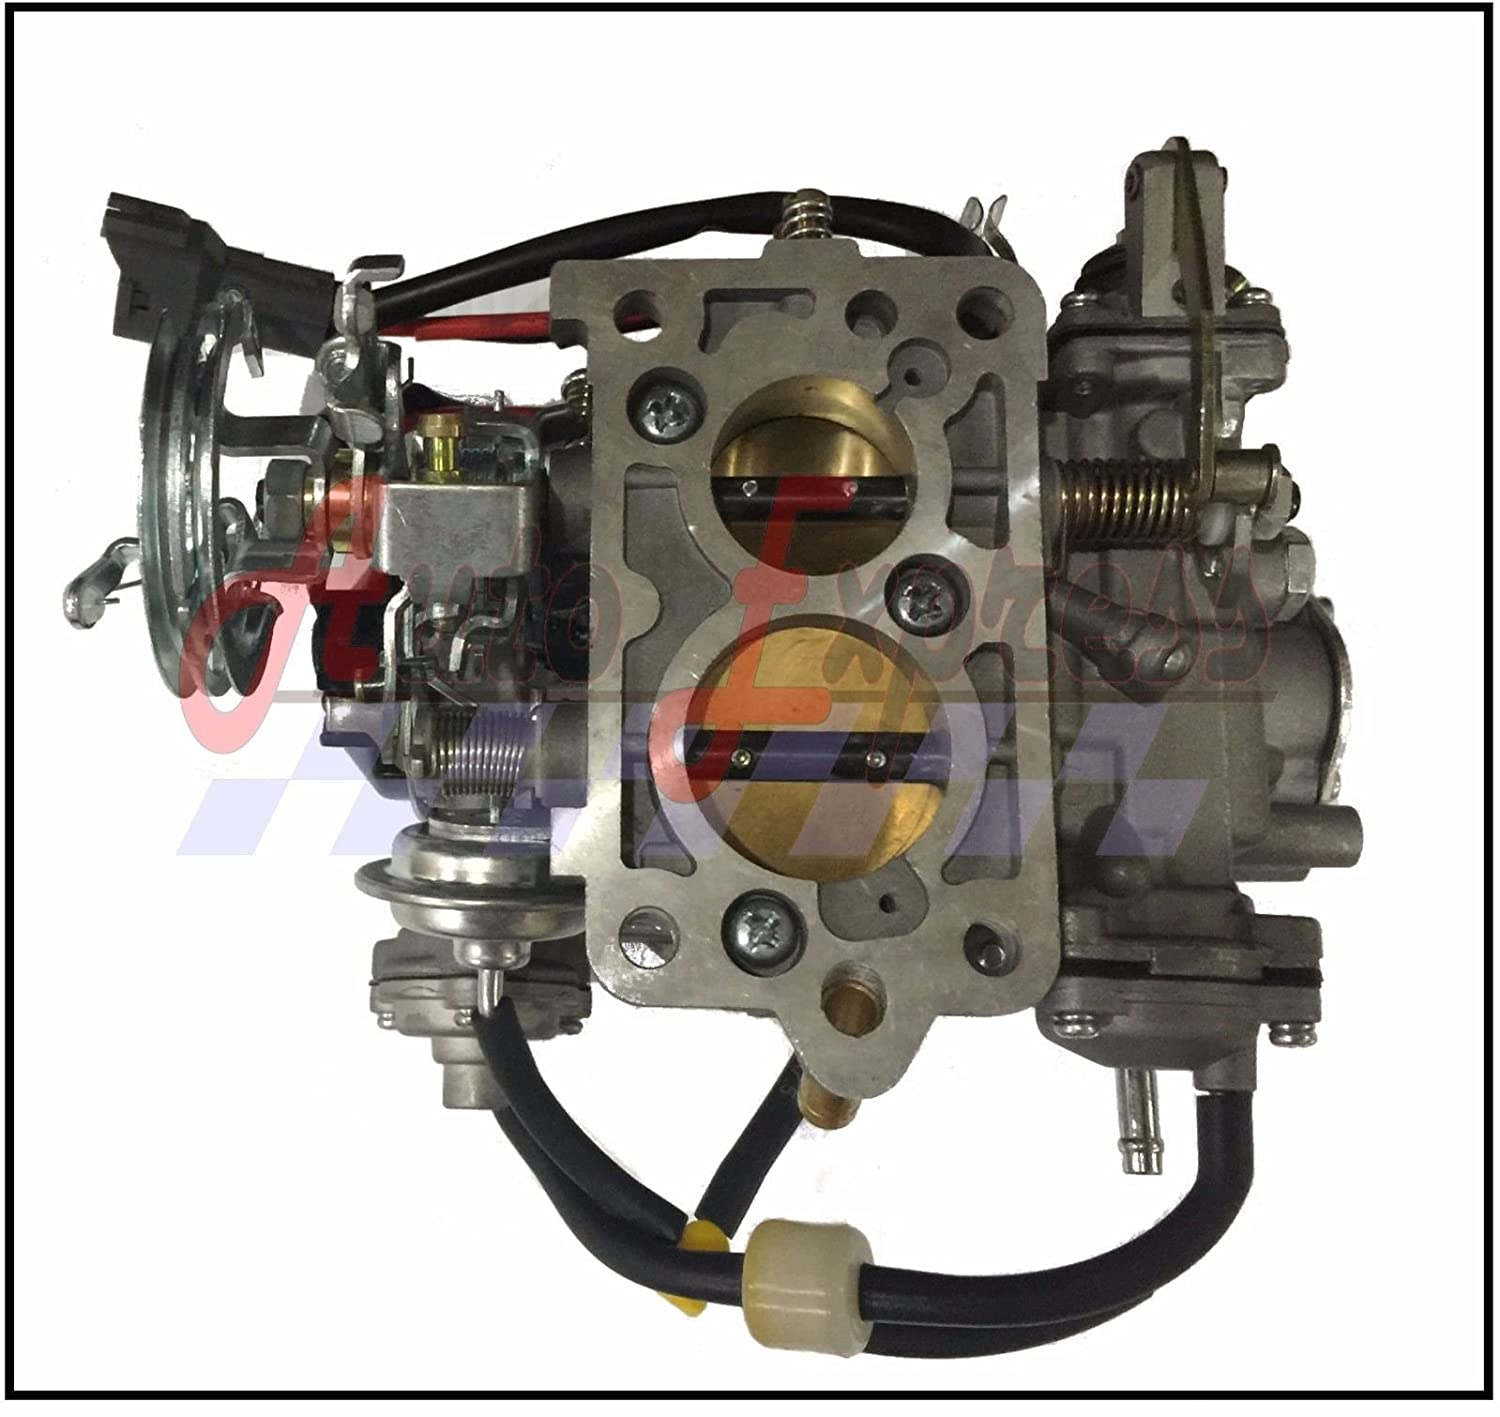 Carburetor Fits Toyota 22r Style Engines 93 Mustang To Carb Wiring Harness Replace 21100 35520 Automotive